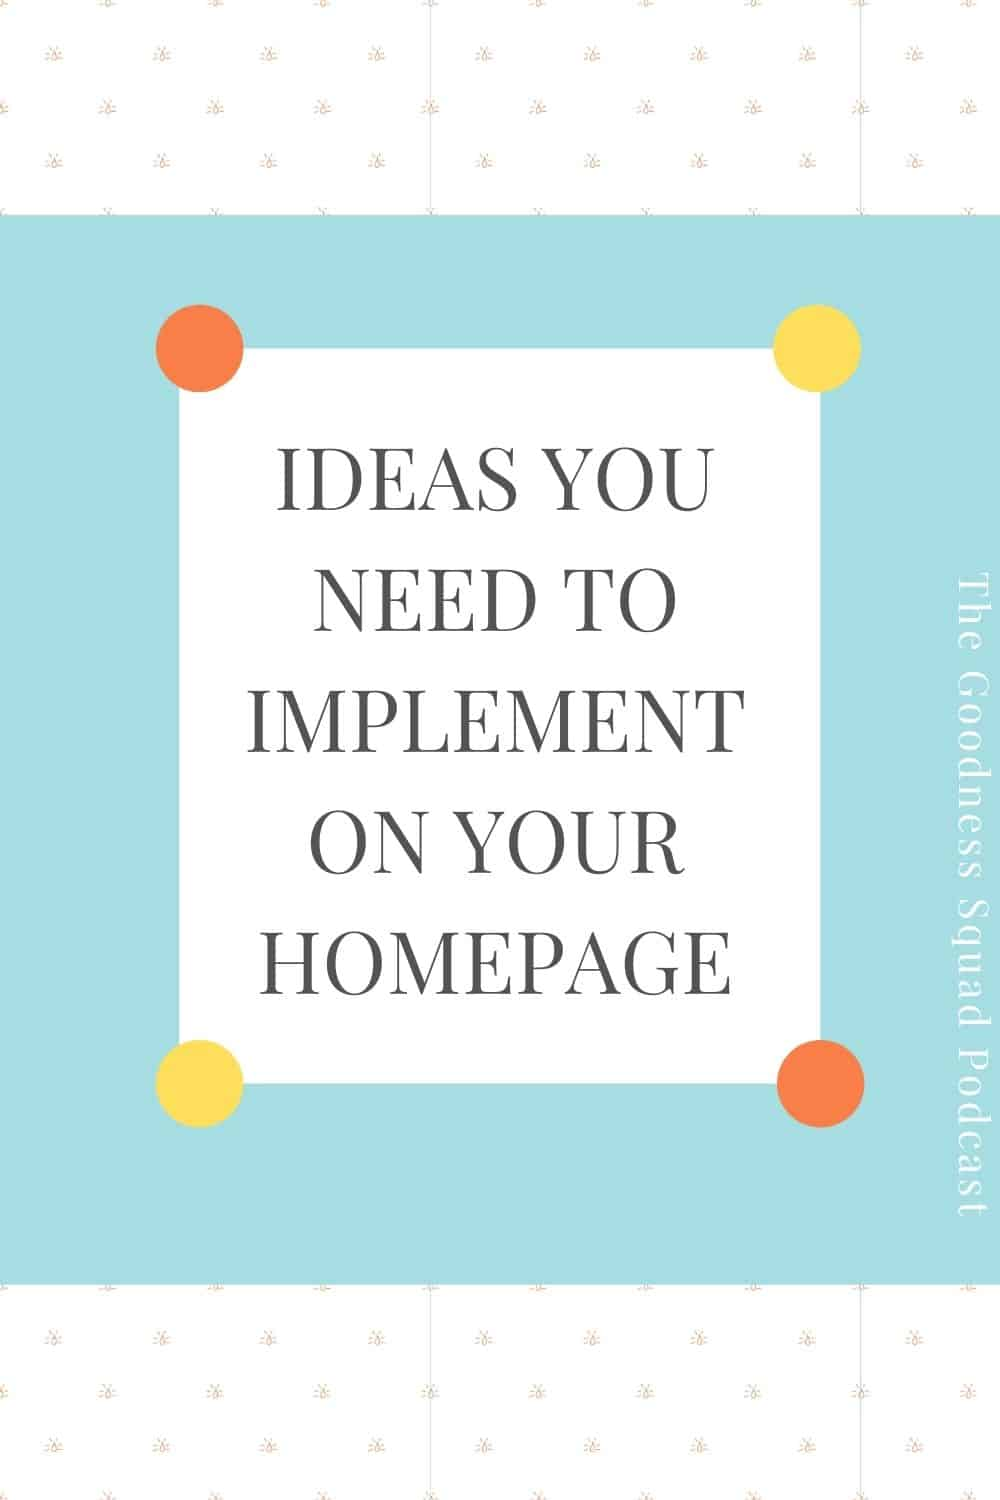 089_how to create a homepage that actually helps people and makes you money